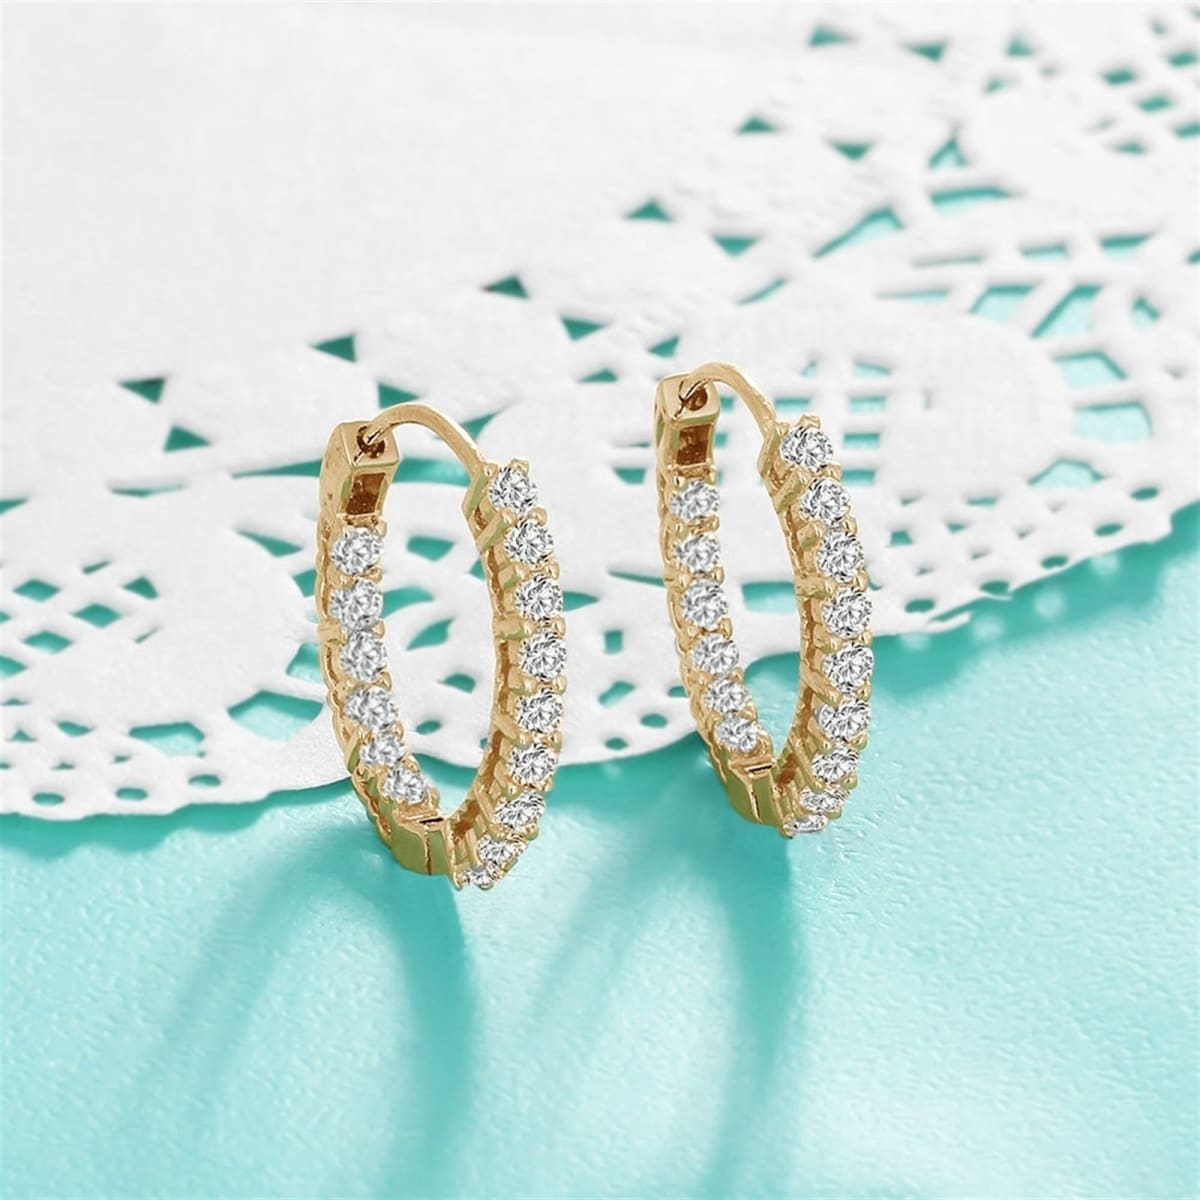 Double Sided Cubic Zirconia Huggie EarringsSale Price $3.99$3.99Retail Price $29.99$29.99(24 revi...   Jane